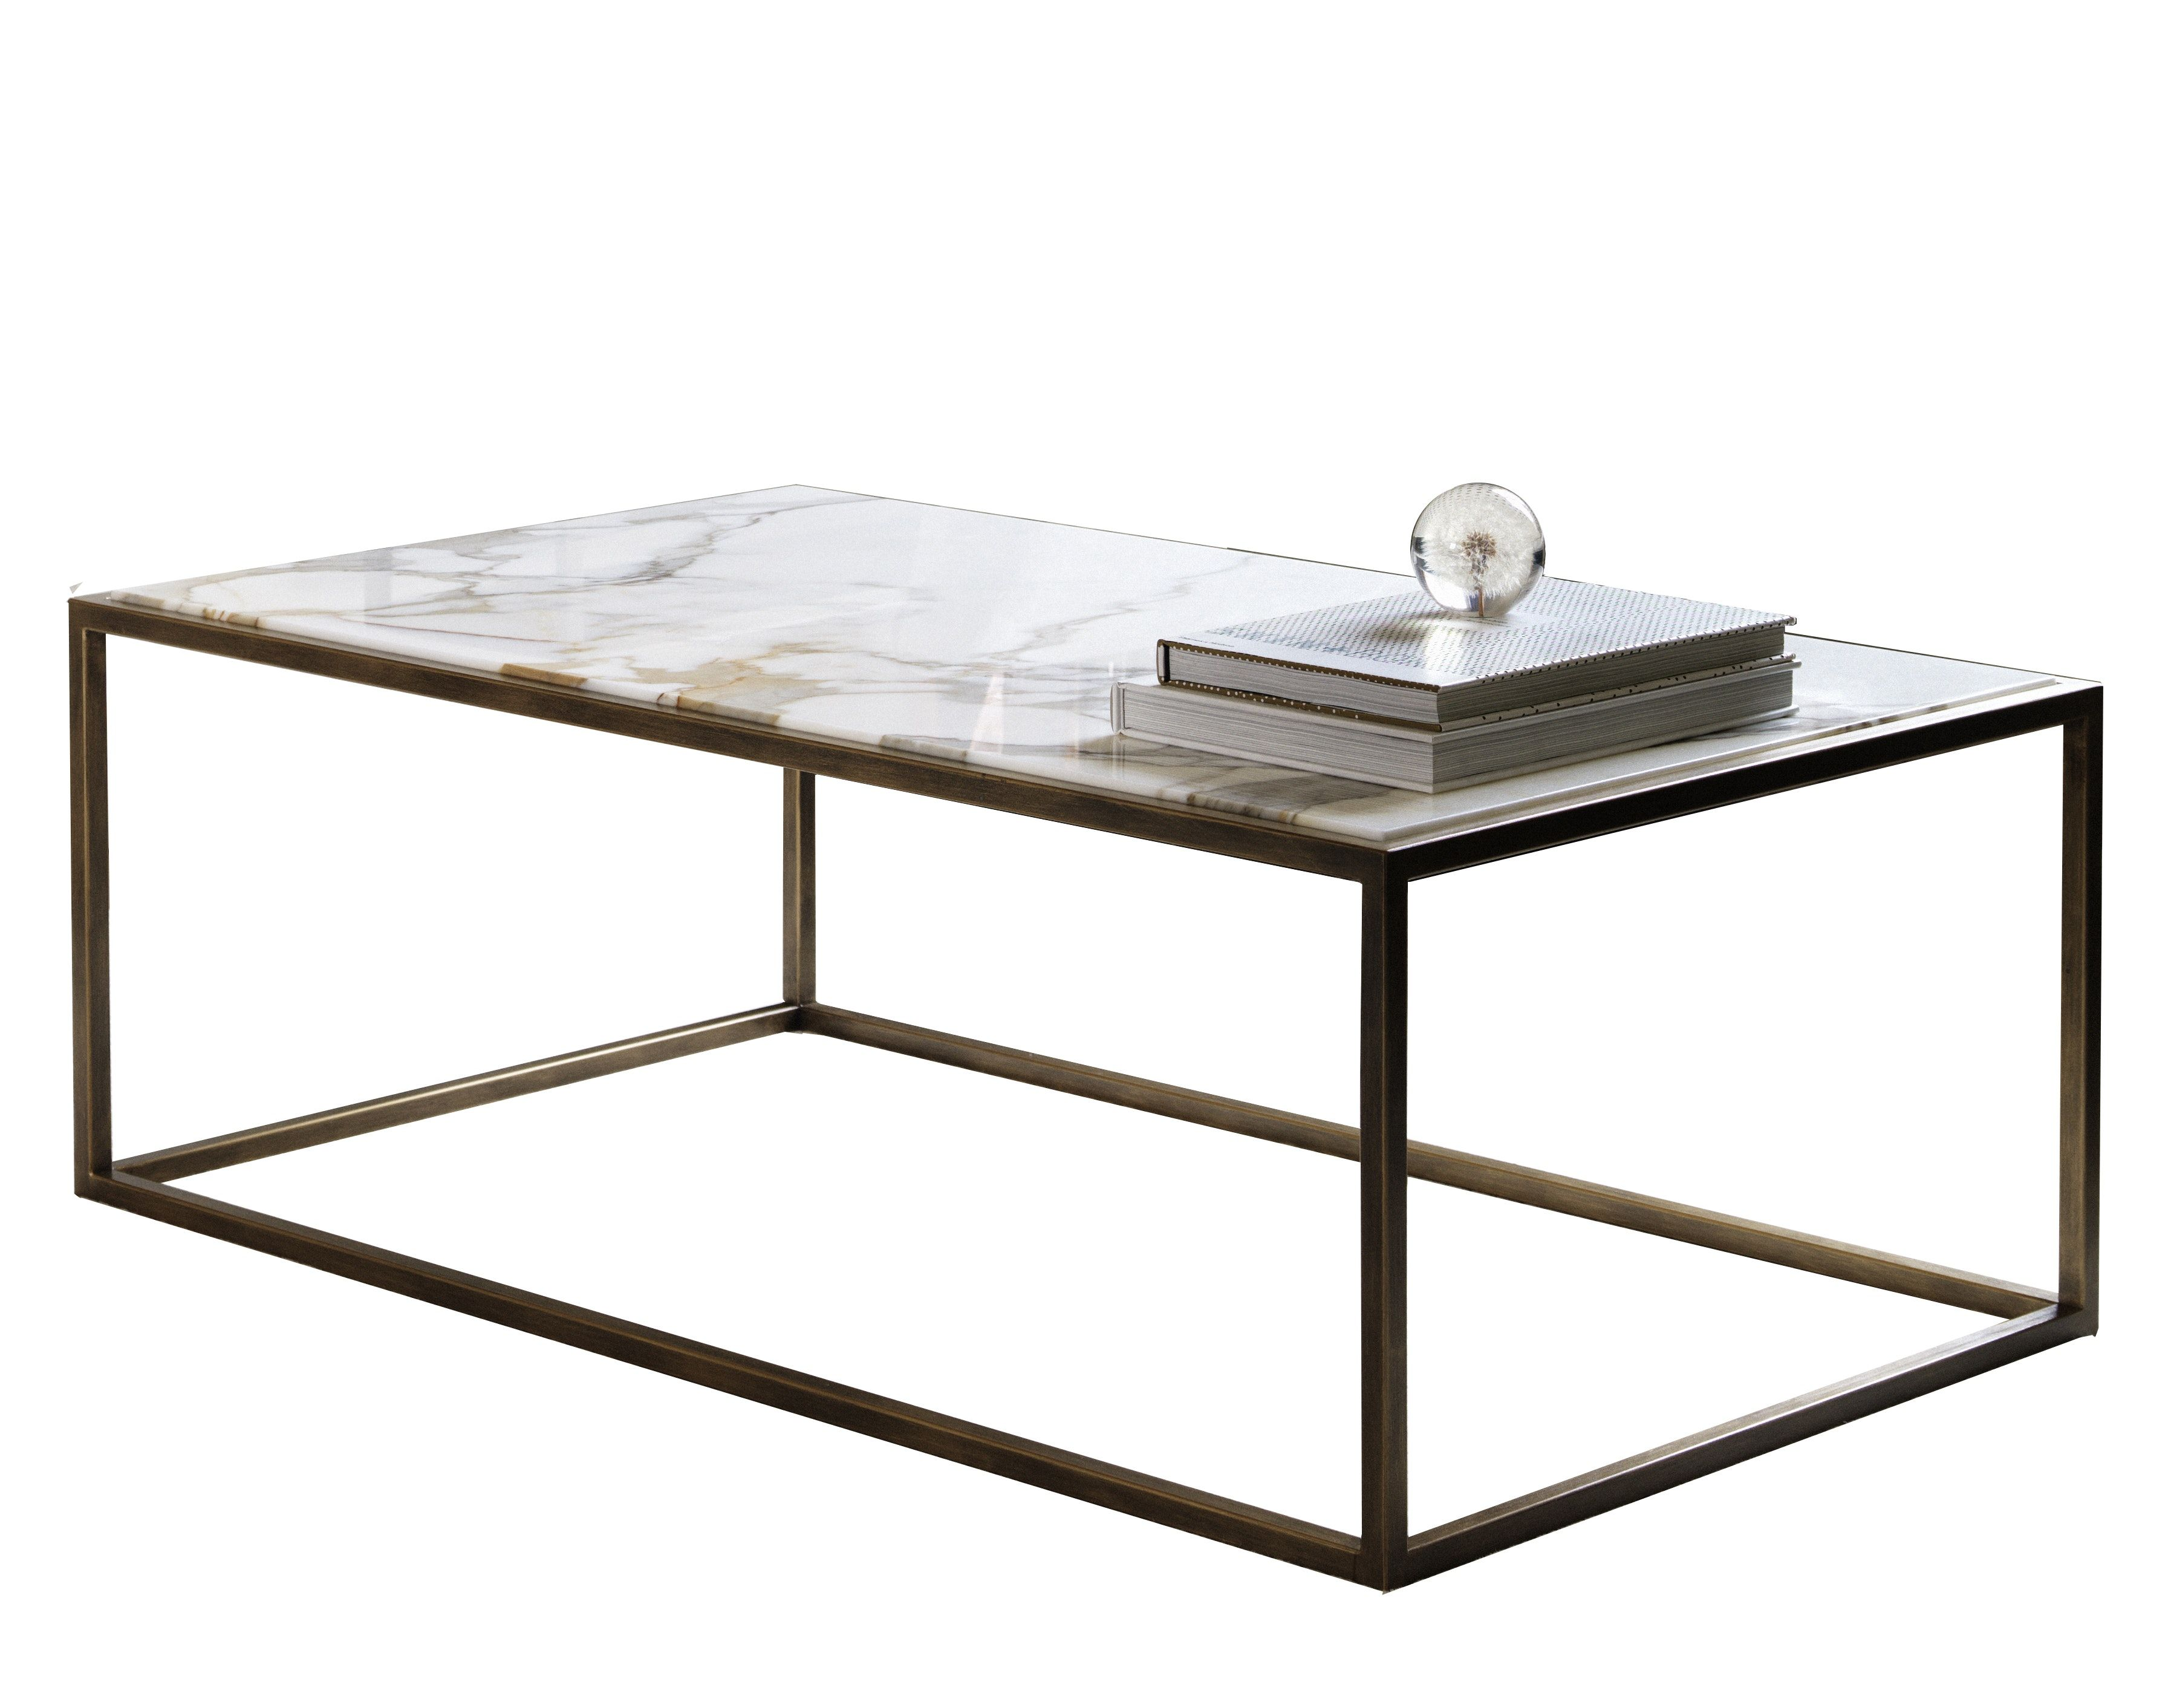 Buy Siena Coffee Table By Tom Faulkner Made To Order Designer Tables From Dering Hall S Collection Of Contemporary Coffee Cocktail Tables [ 2824 x 3590 Pixel ]